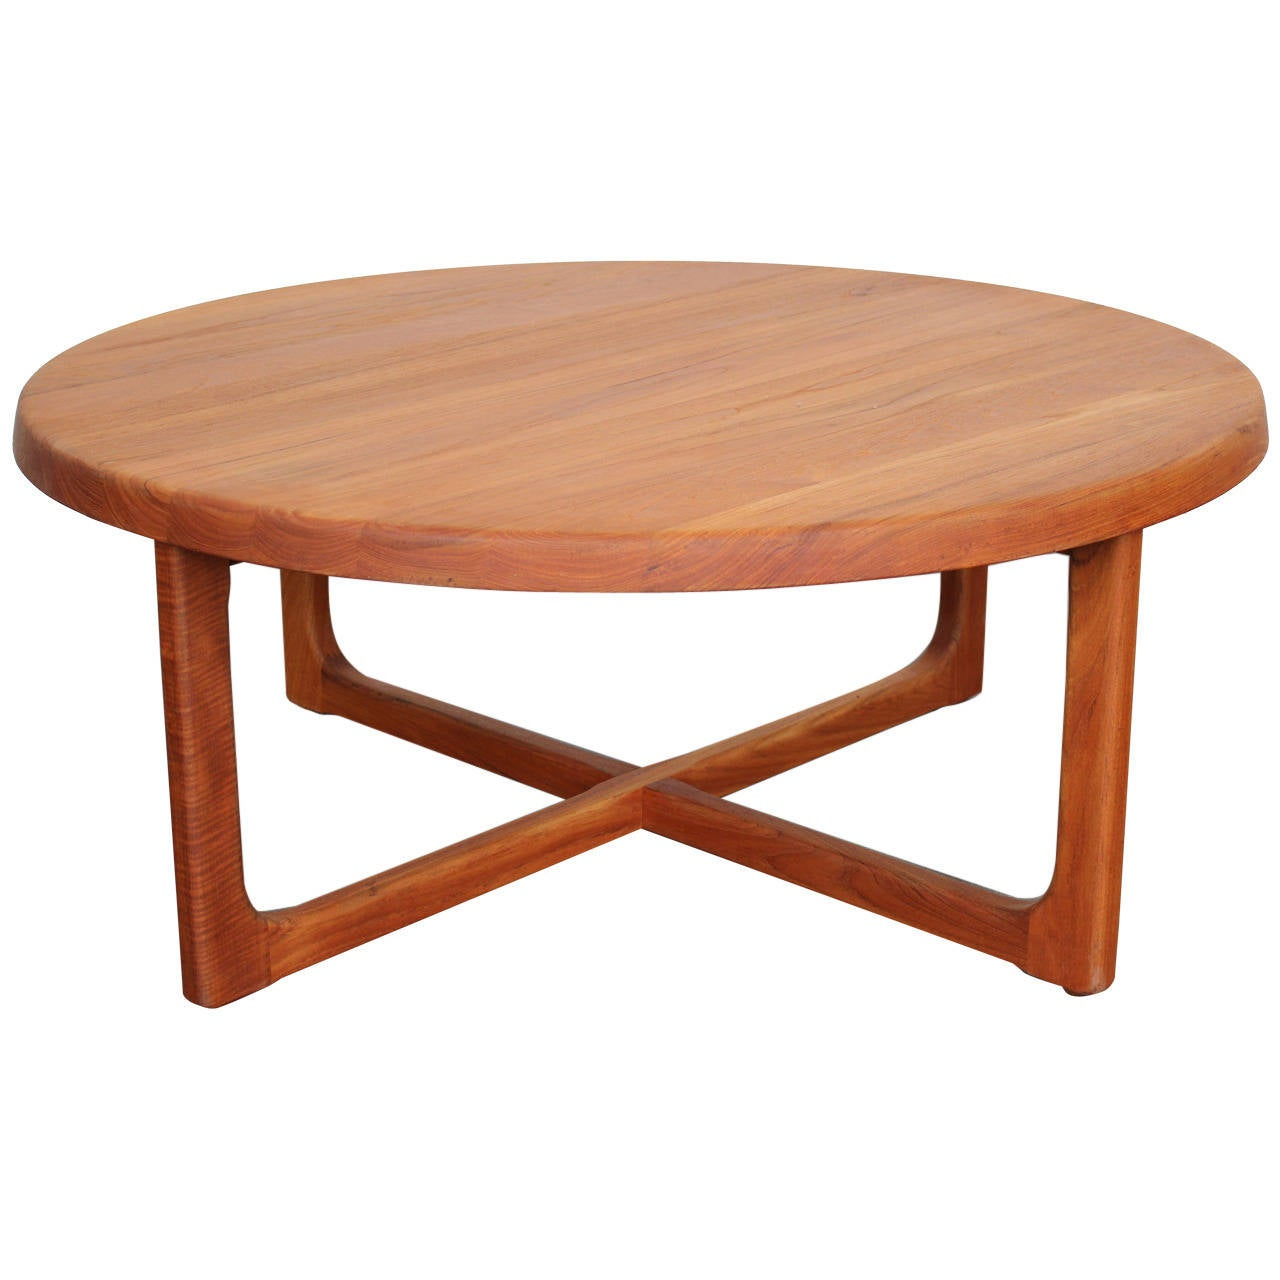 Mid century large round solid teak coffee table at 1stdibs Mid century coffee tables